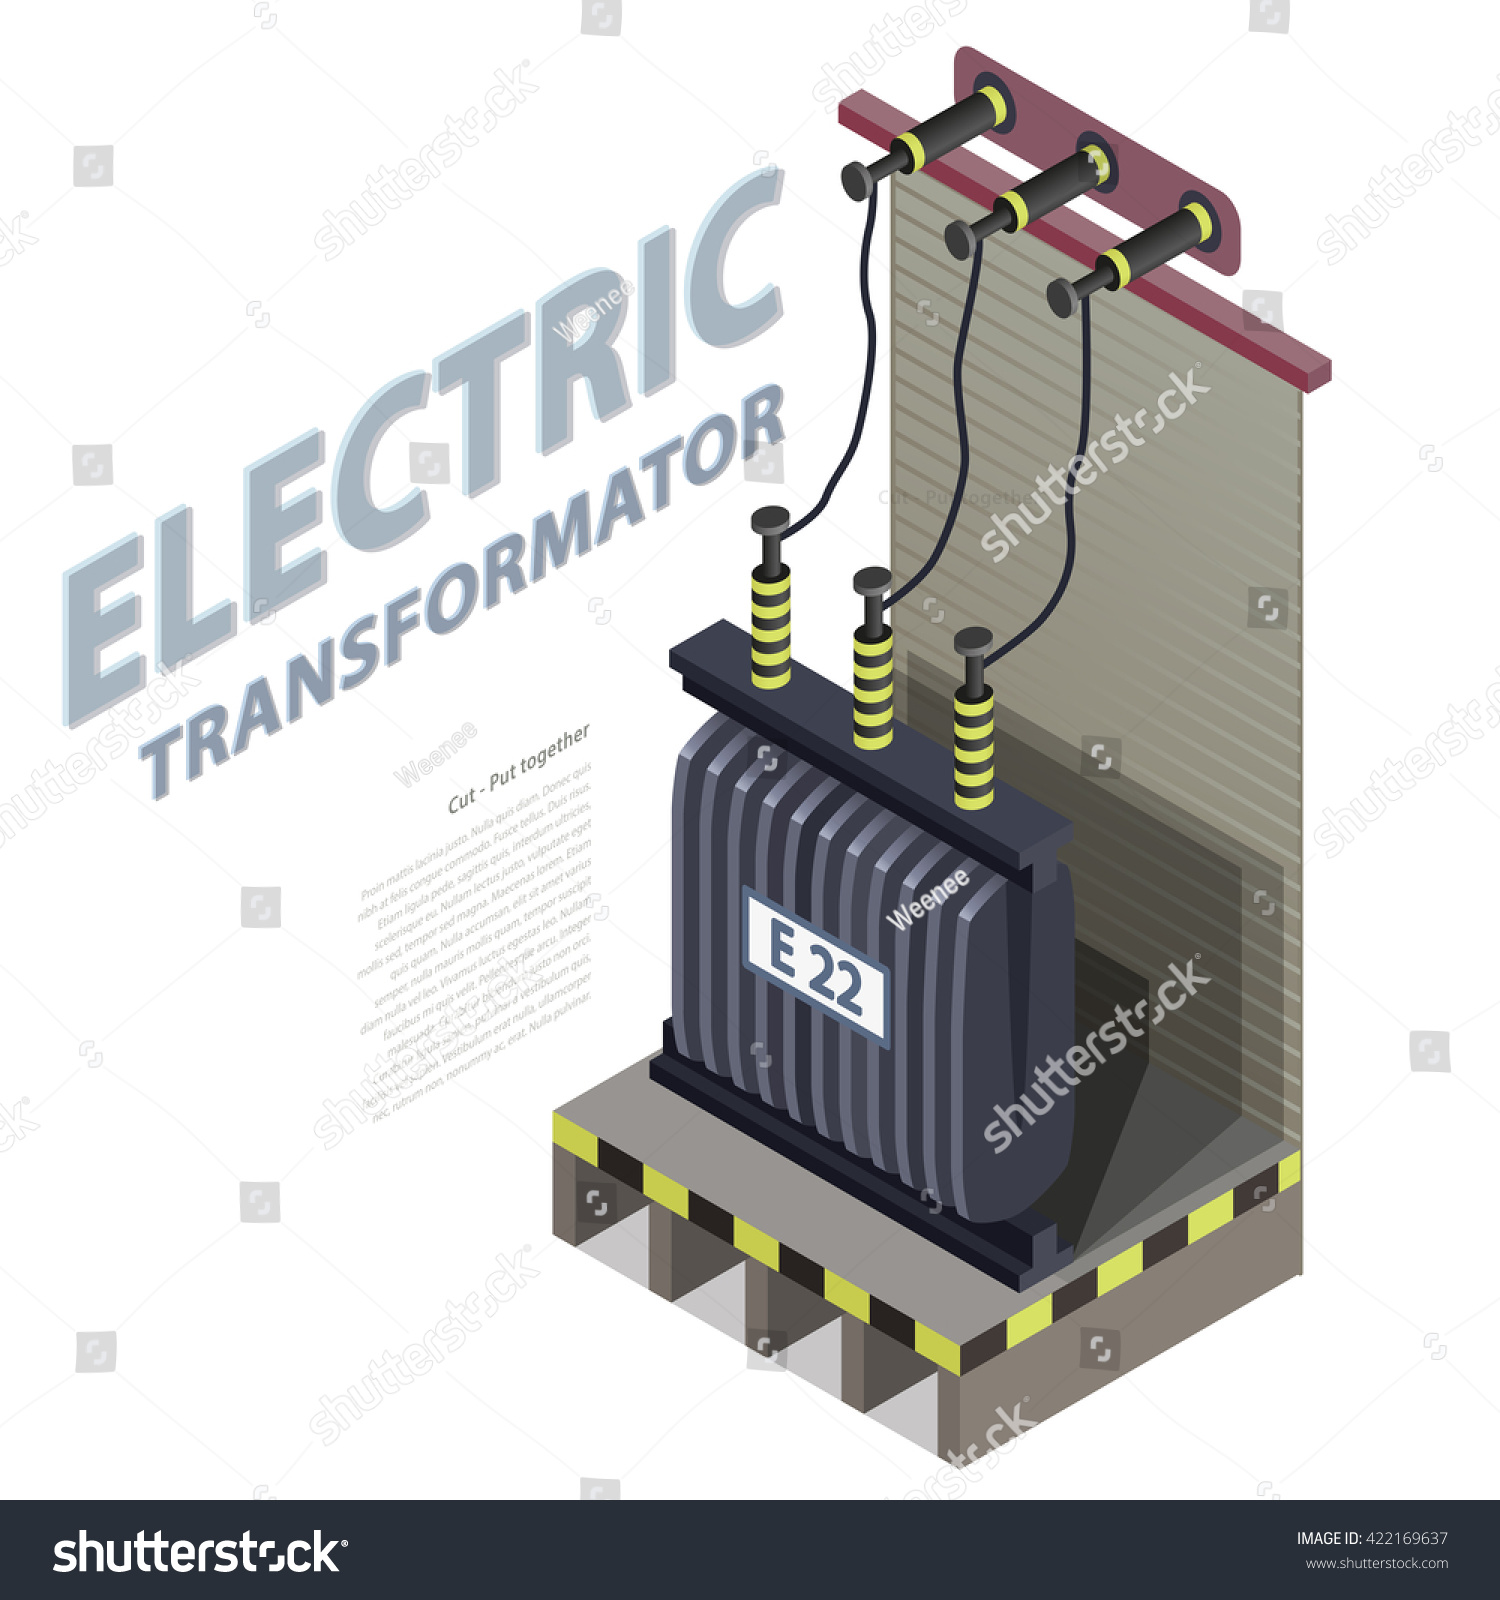 Electric Transformer Isometric Building Info Graphic Stock Vector Isolation Wiring Diagram Looking For An Advice To Build High Voltage Power Station Old Plant Architecture